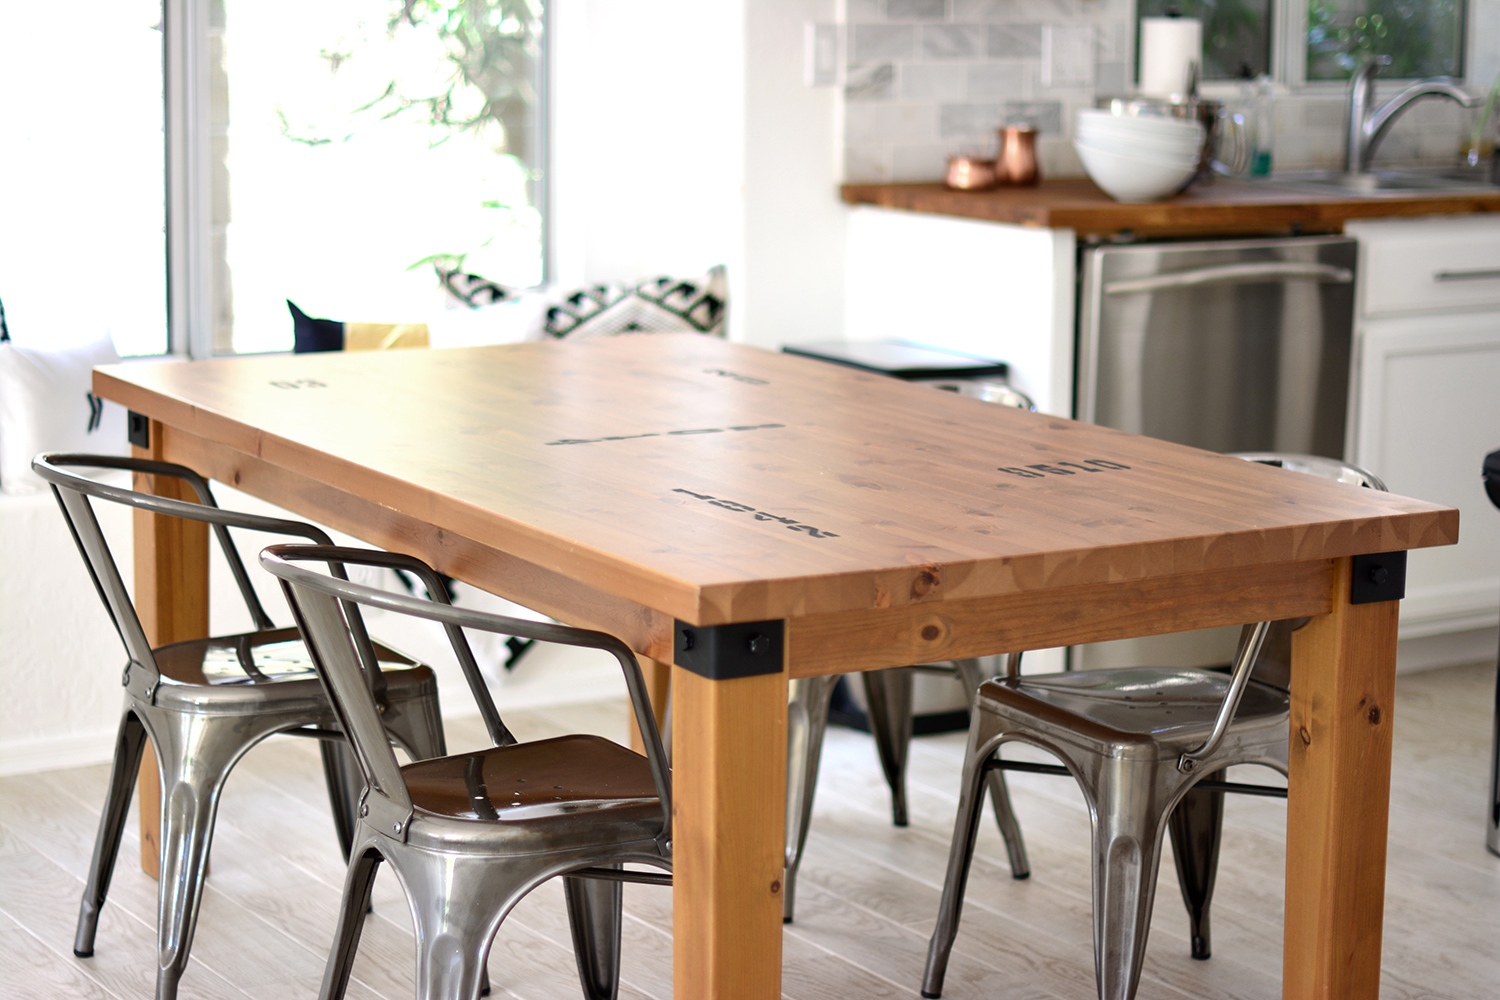 Kitchen Table Makeover + Caprese Spaghetti  Kristi Murphy